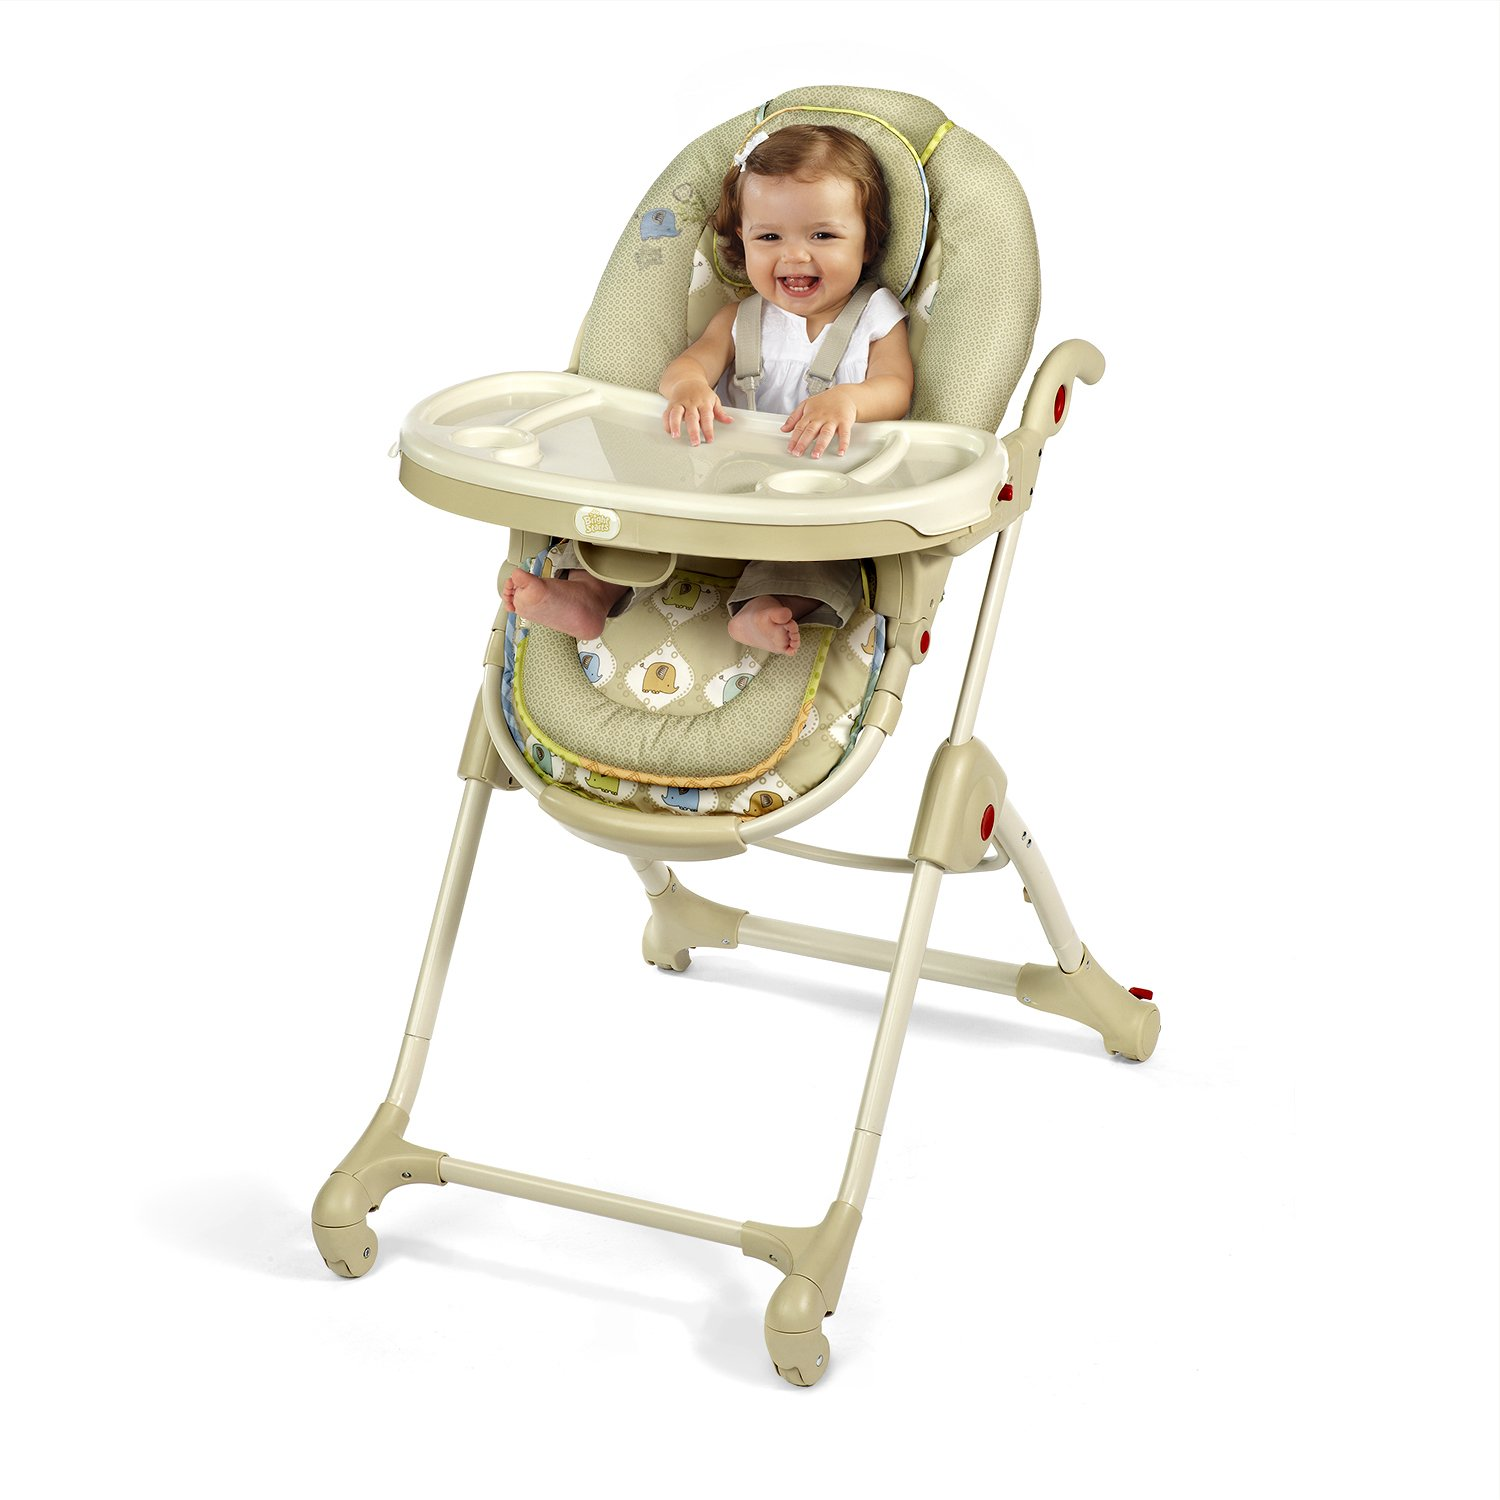 for eat happy ingenuity baby harness top quality high kids with furniture and chairs chair be portable o best practical modern